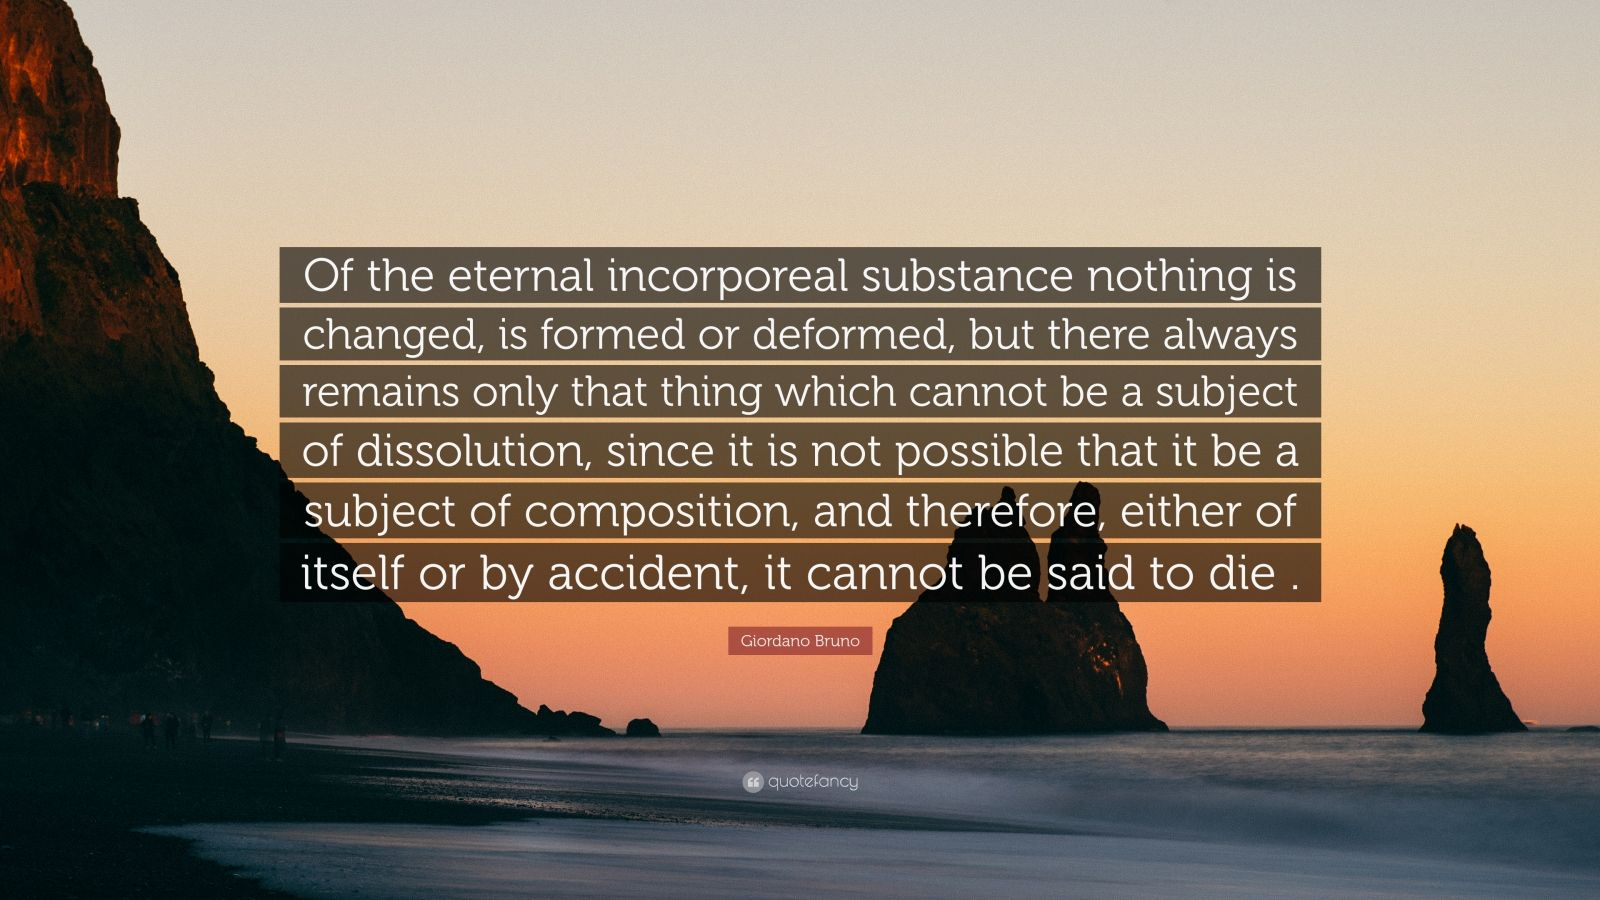 """Giordano Bruno Quote: """"Of the eternal incorporeal substance nothing is changed, is formed or deformed, but there always remains only that thing which cannot be a subject of dissolution, since it is not possible that it be a subject of composition, and therefore, either of itself or by accident, it cannot be said to die ."""""""